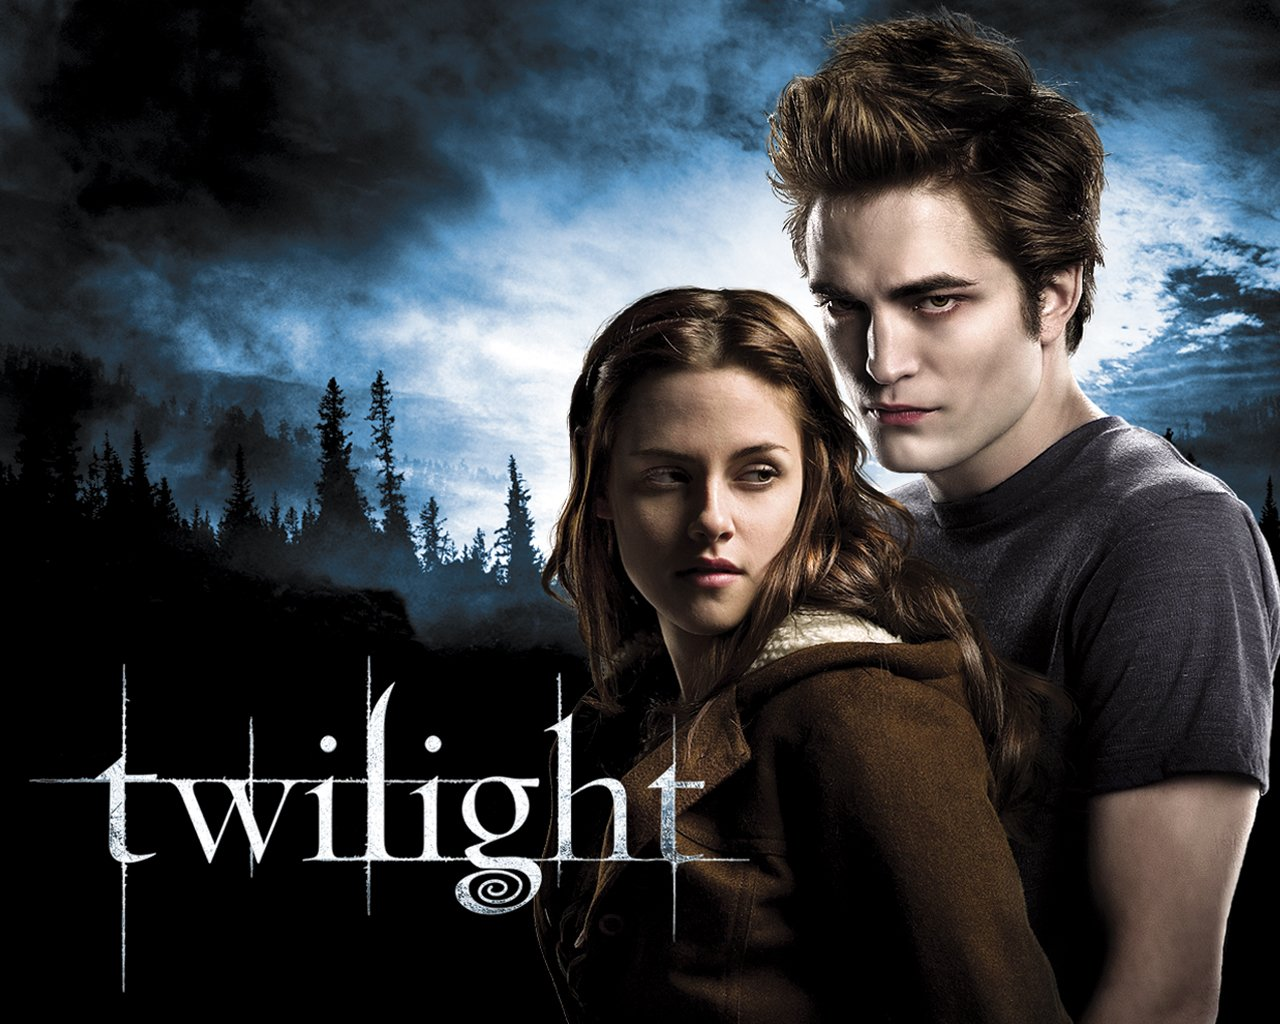 http://good-wallpapers.com/pictures/3109/twilight.jpg